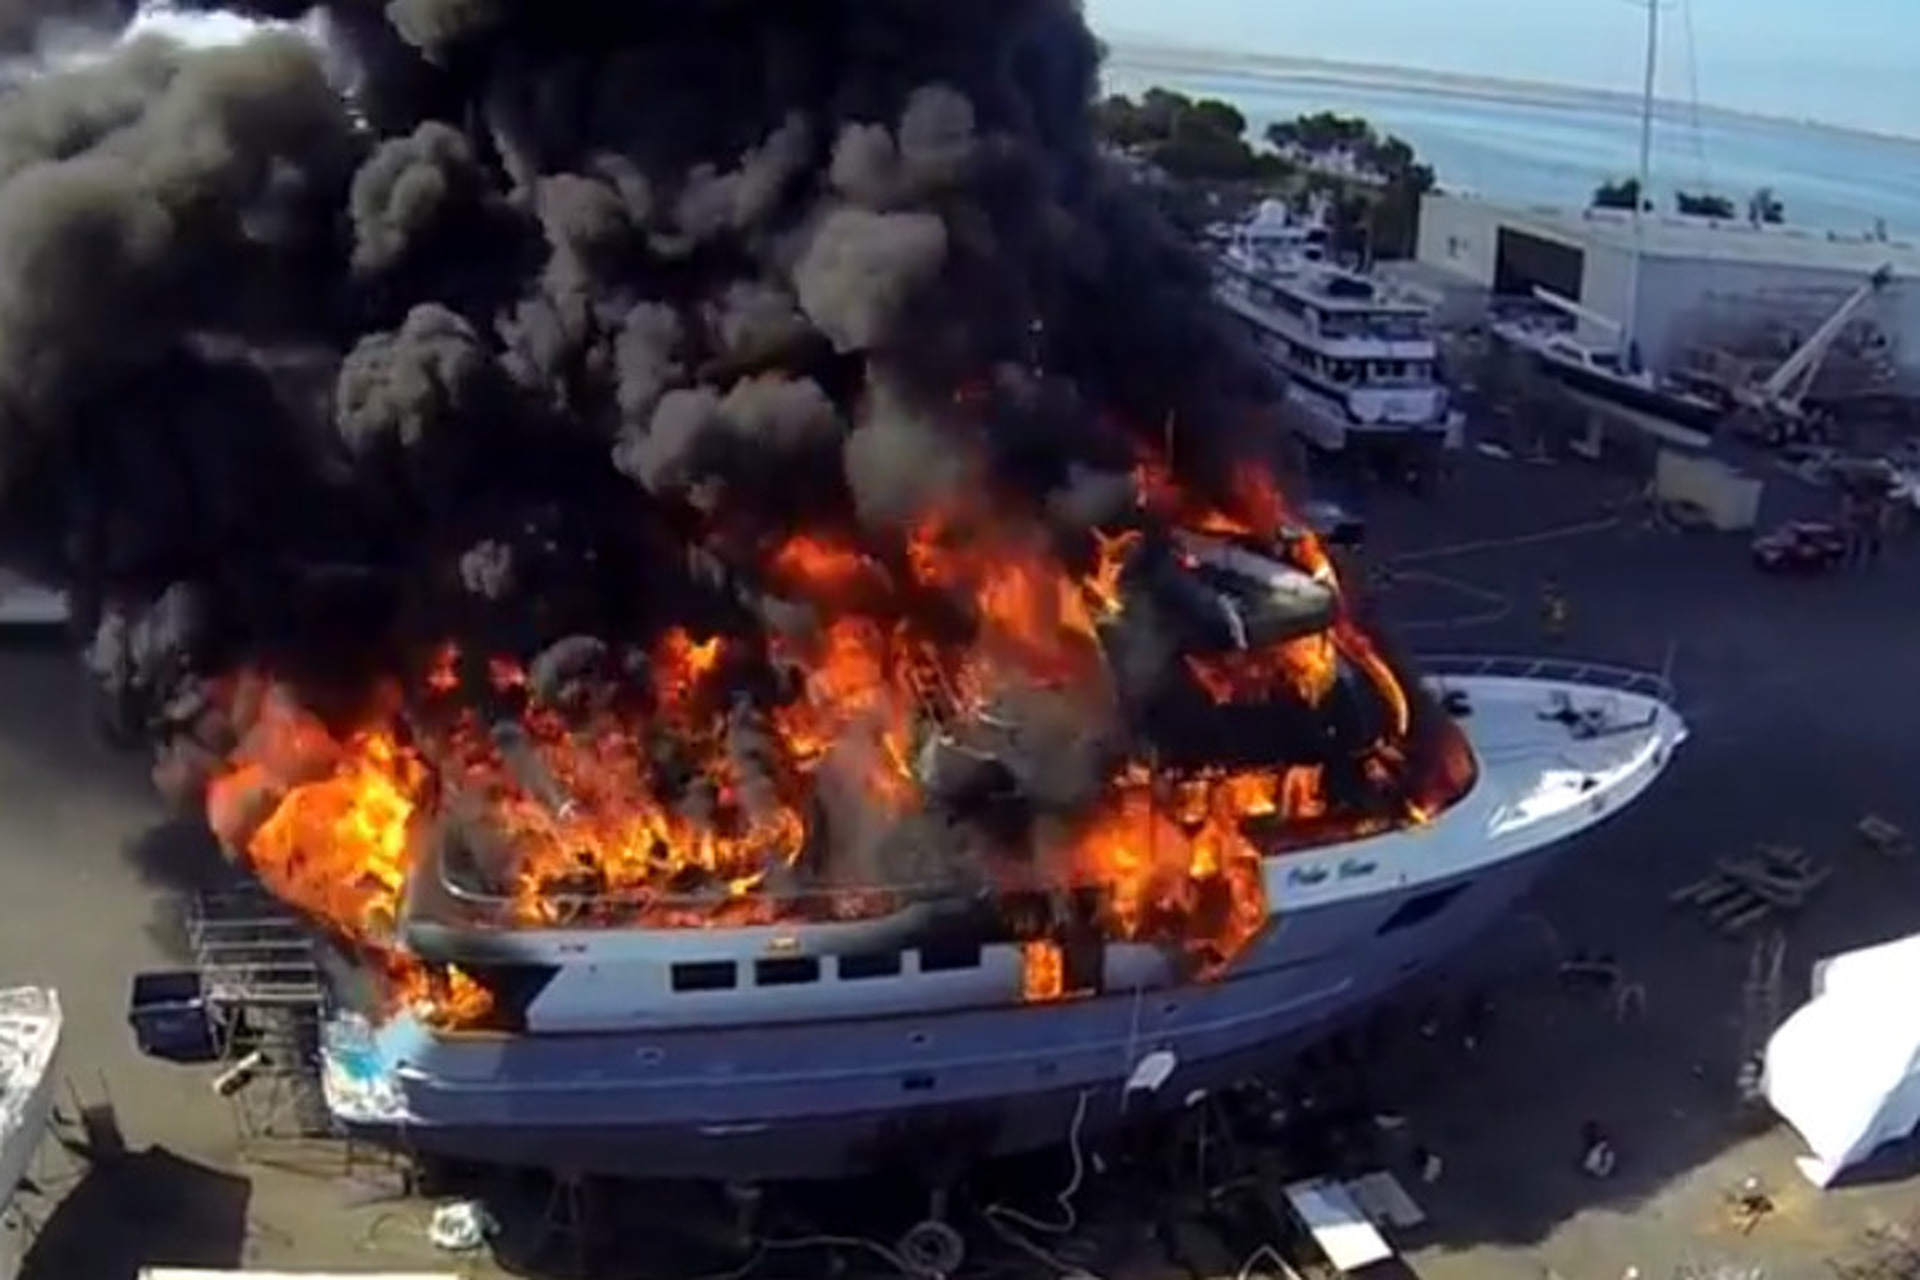 This Drone Footage of a 102-Foot Yacht on Fire is Incredible [video]